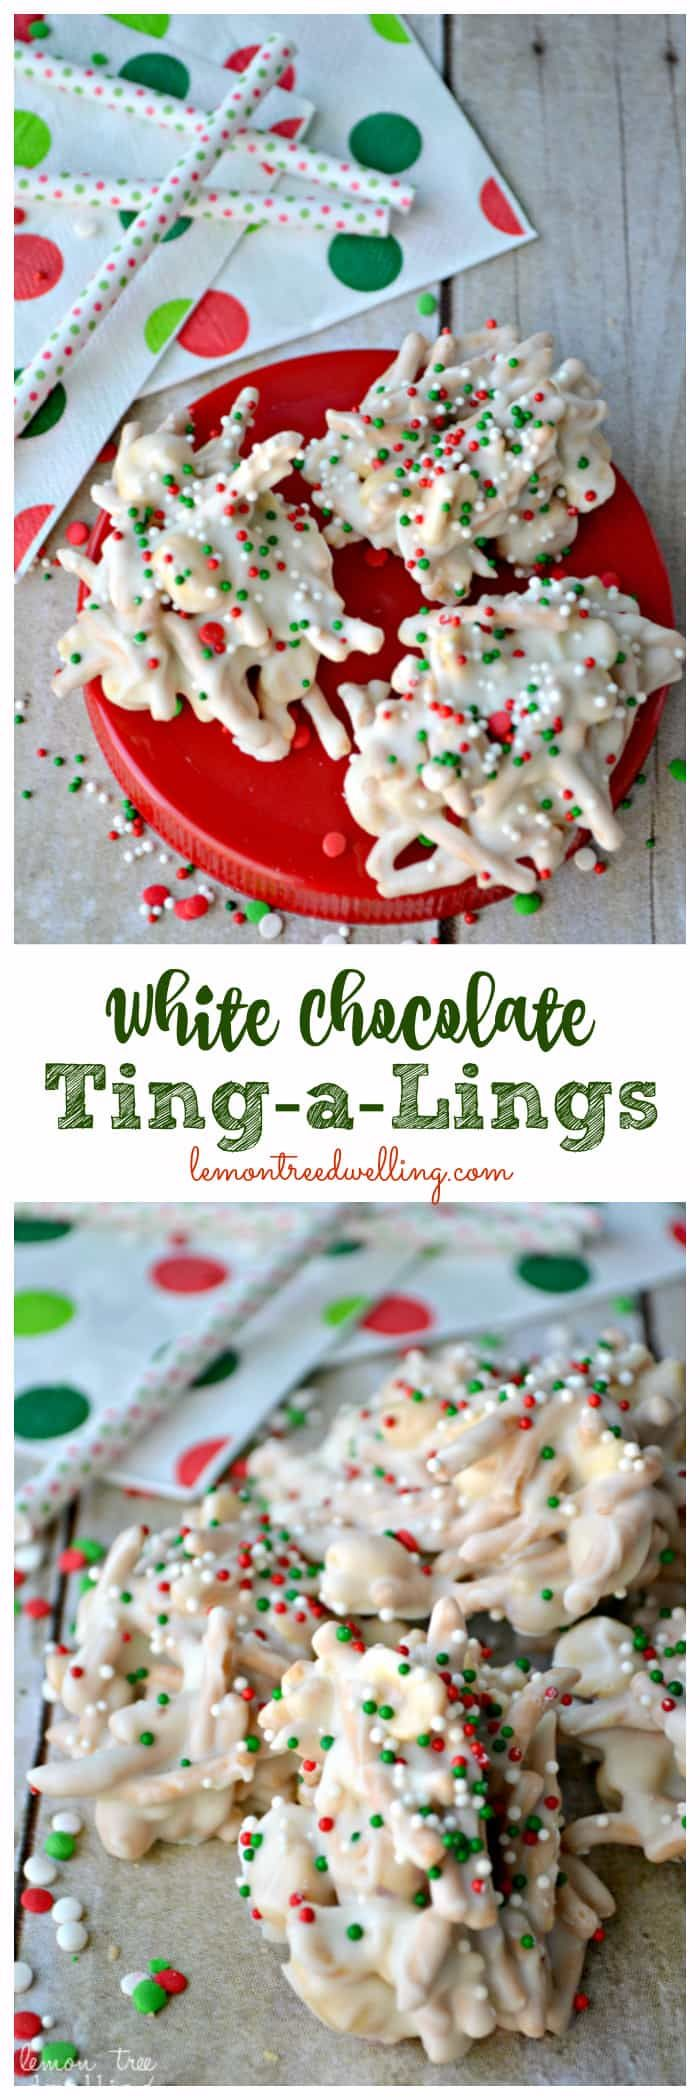 White Chocolate Ting-a Lings are one of our favorite holiday treats! Loaded with salty peanuts and crunchy chow mein noodles, then smothered in white chocolate and decorated with red, green & white Christmas sprinkles, they're the perfect salty-sweet no-bake treat. Also known as haystacks, spider cookies, chow mein clusters, and birds nest cookies, once you try them you'll know why they're everyone's FAVORITE! Perfect for gifting, too! So I mentioned that I had some friend...